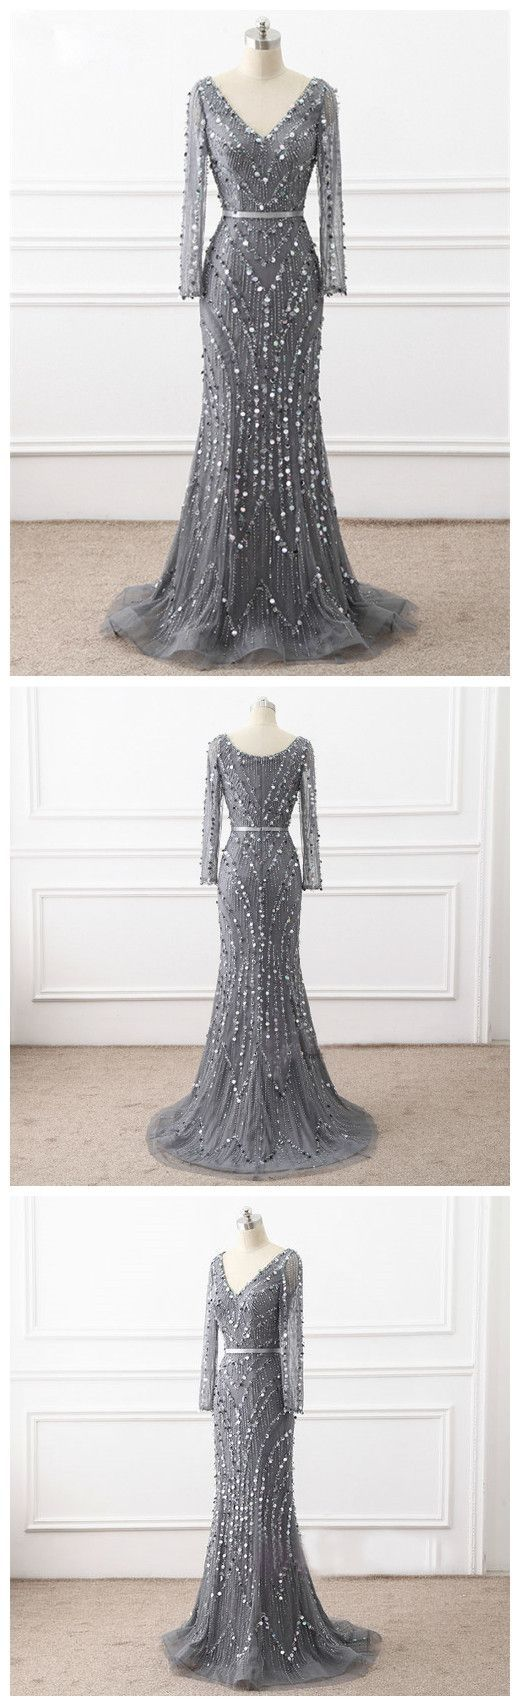 Custom made dazzling prom dresses long long sleeves prom dresses in